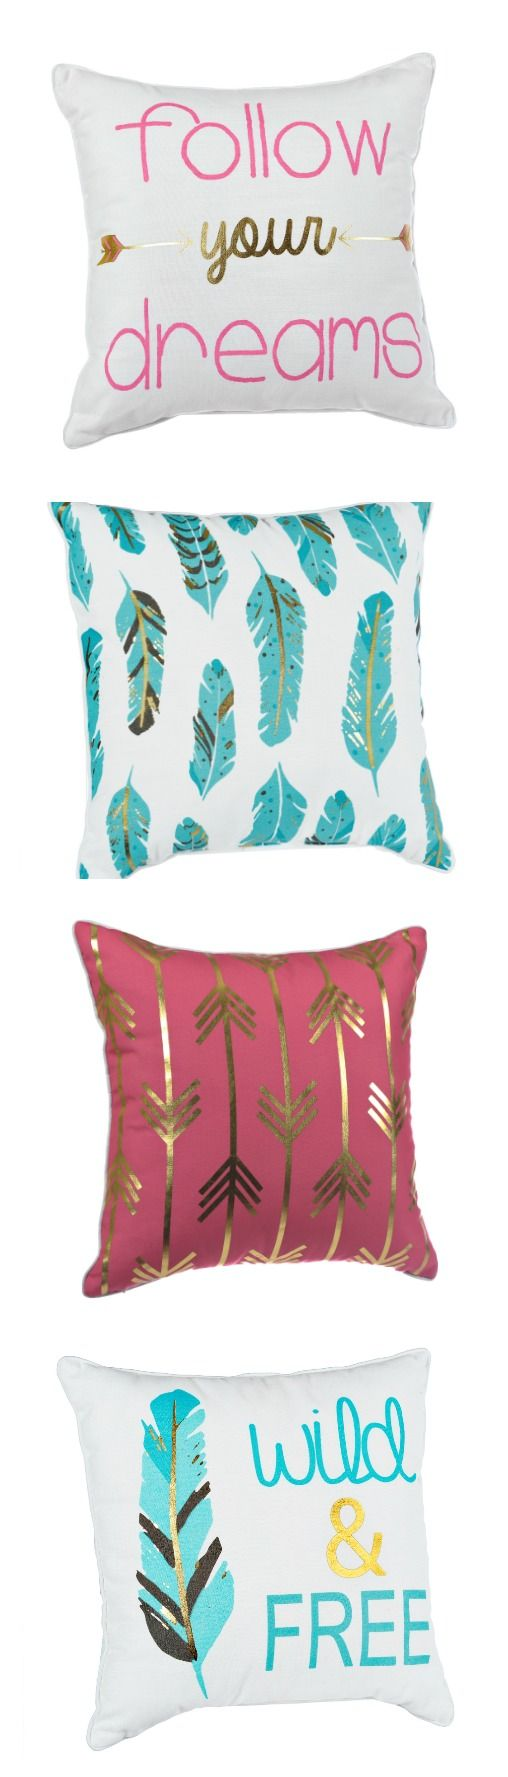 "Comfort is important. But why not have comfort AND style this back-to-school season? Browse our decorative throw pillows to find your perfect combo and add a touch of personality to your dorm room. Explore styles from turquoise feathers to gold arrows, from ""Follow Your Dreams"" to ""Wild & Free."""